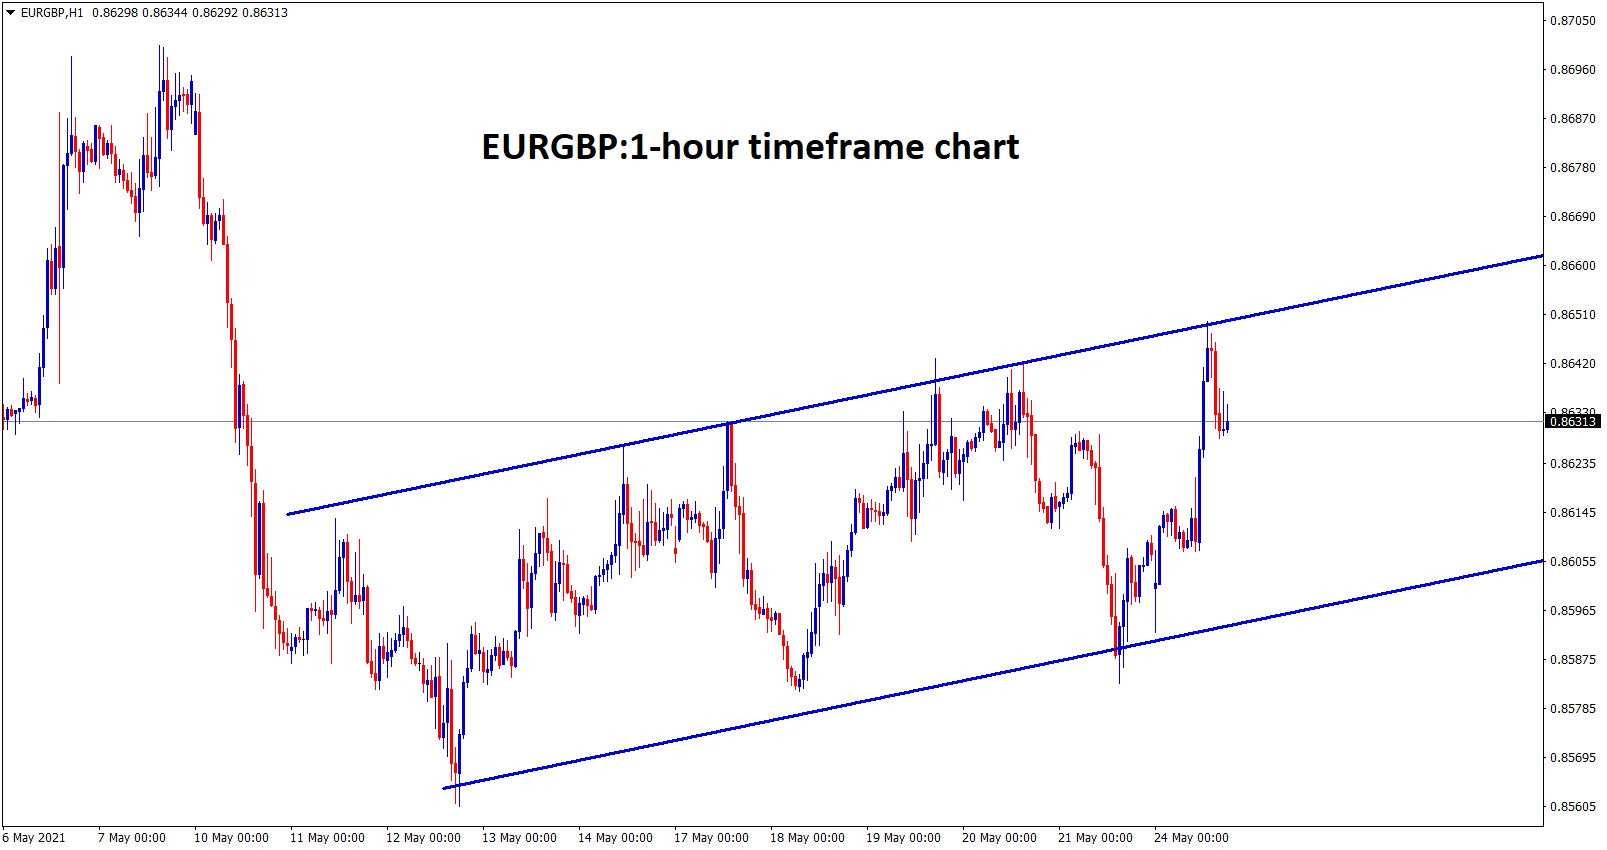 EURGBP is moving in an Ascending channel in the 1 hour timeframe